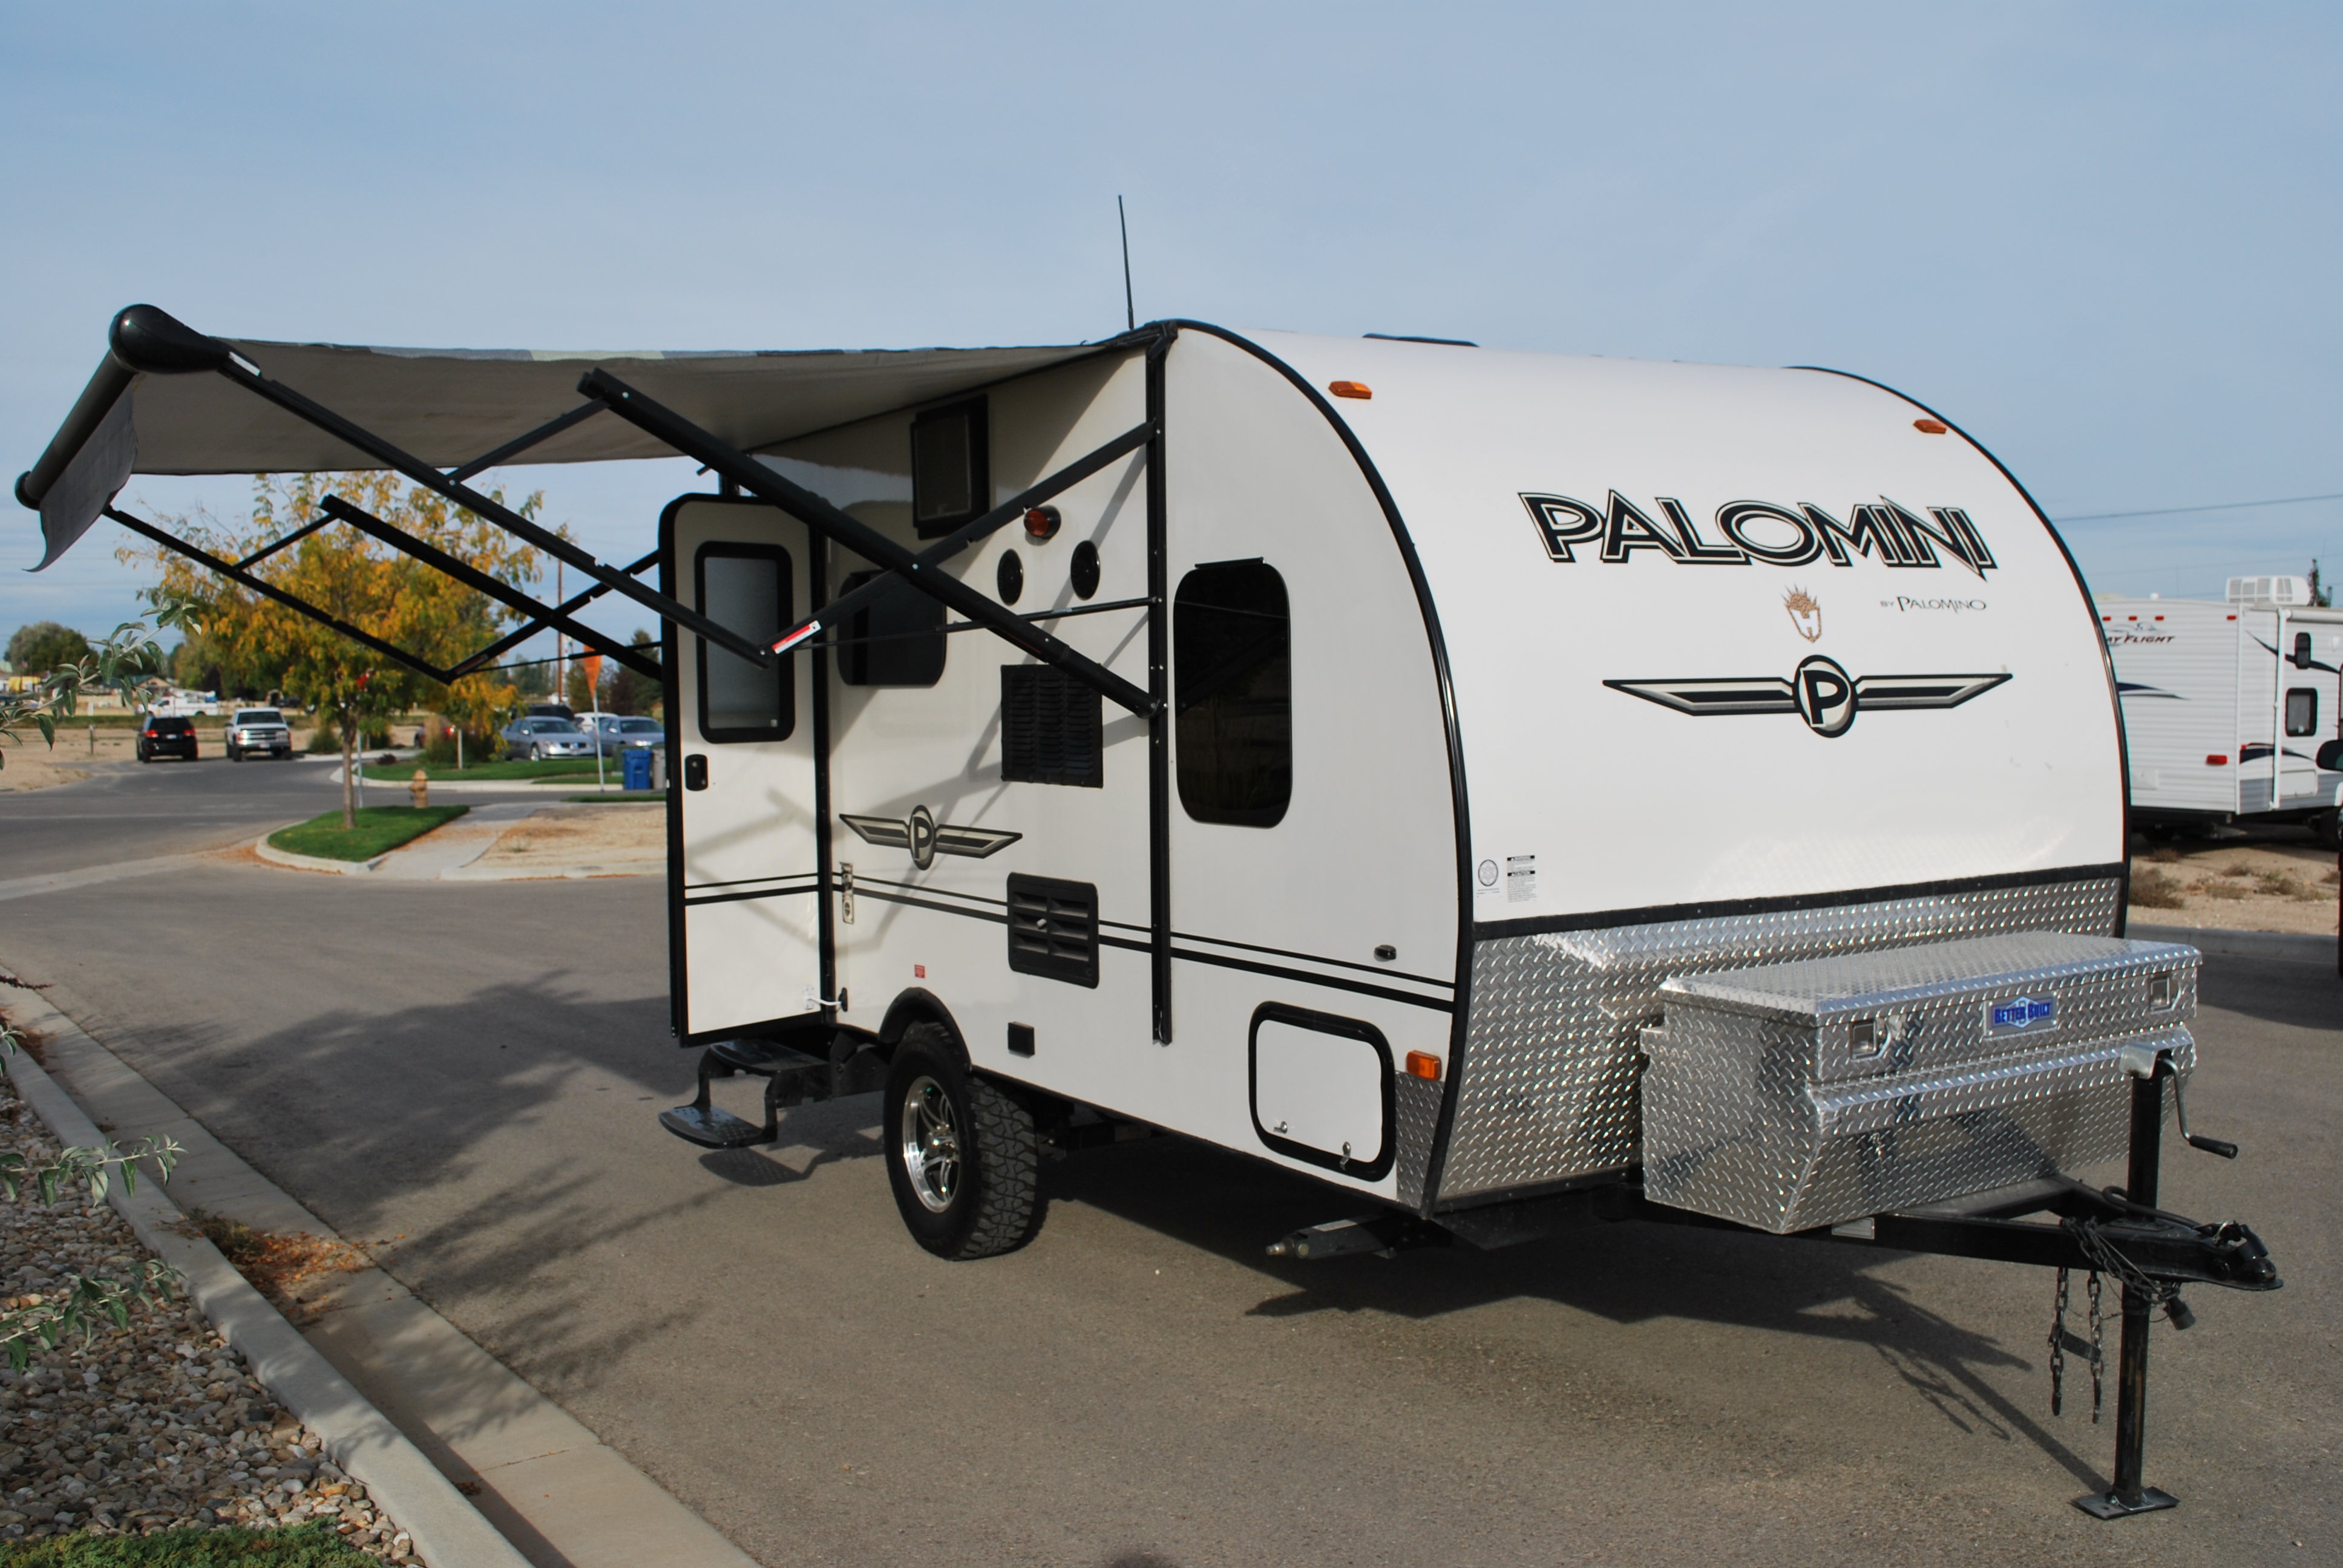 15′ Palomino PaloMini Lite Travel Trailer Rental